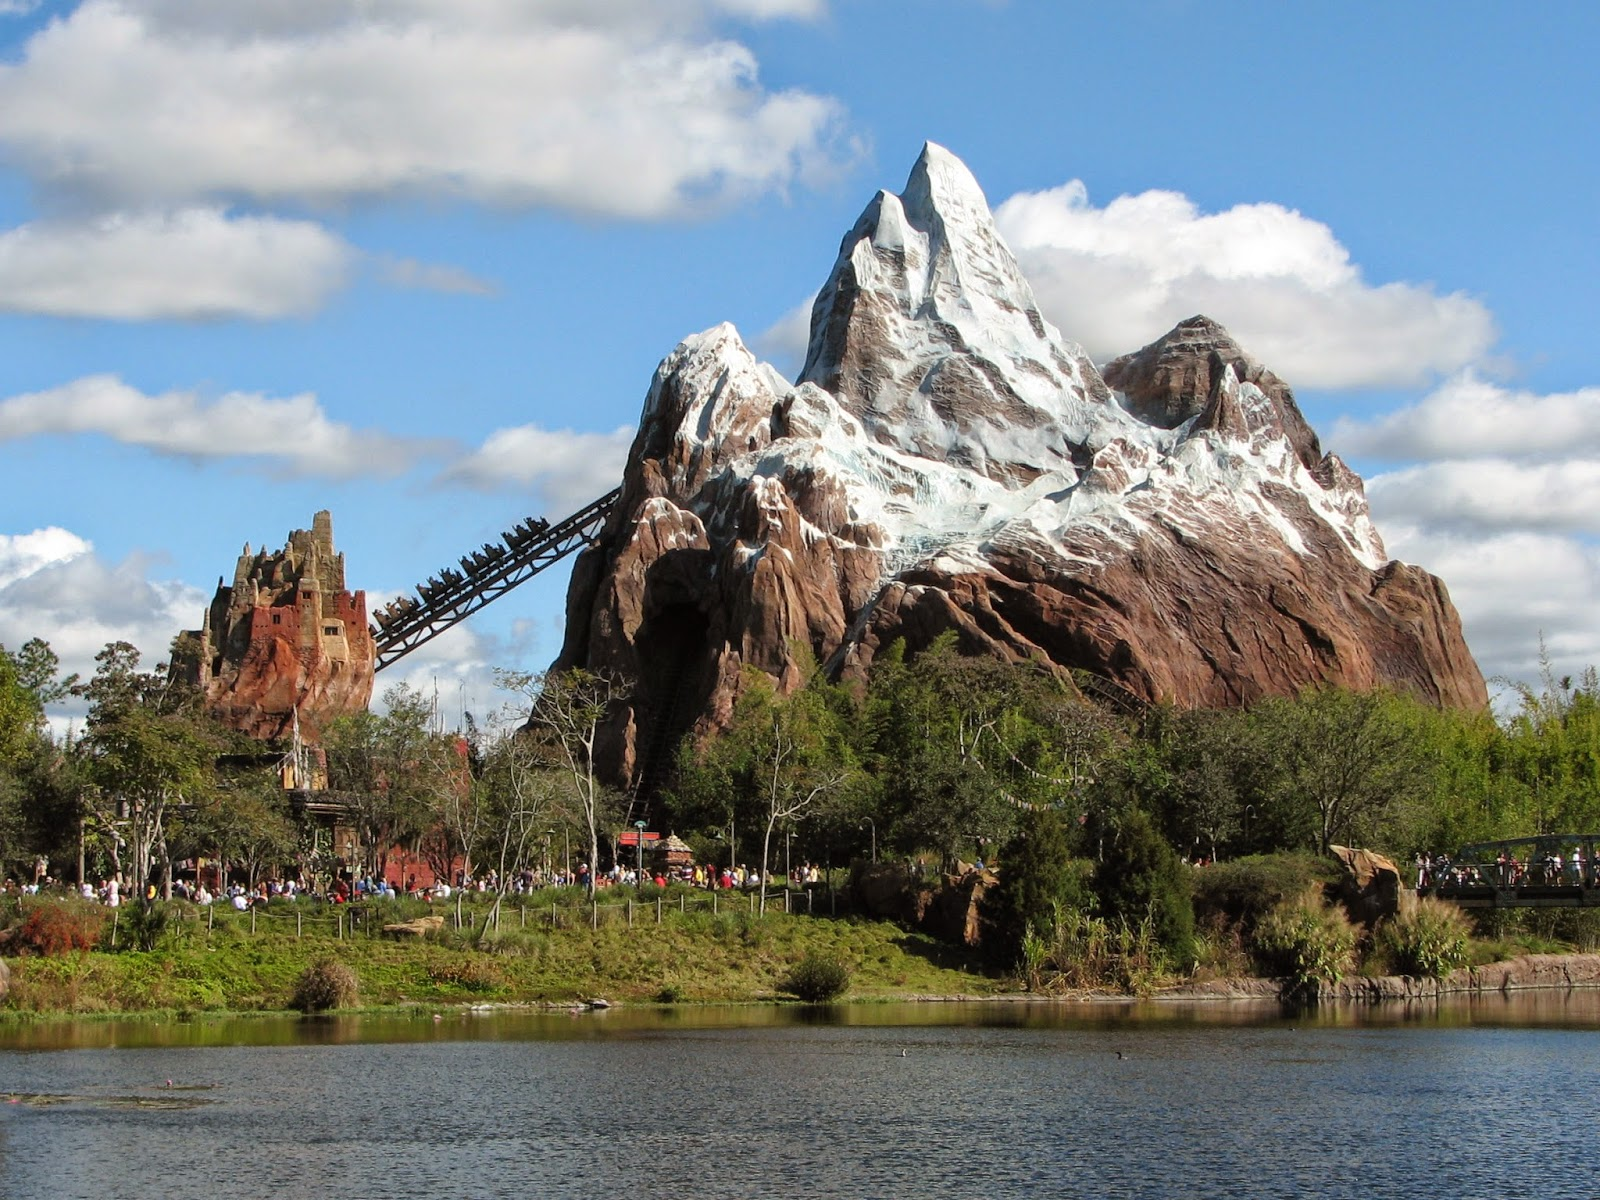 Parque Animal Kingdom Disney em Orlando